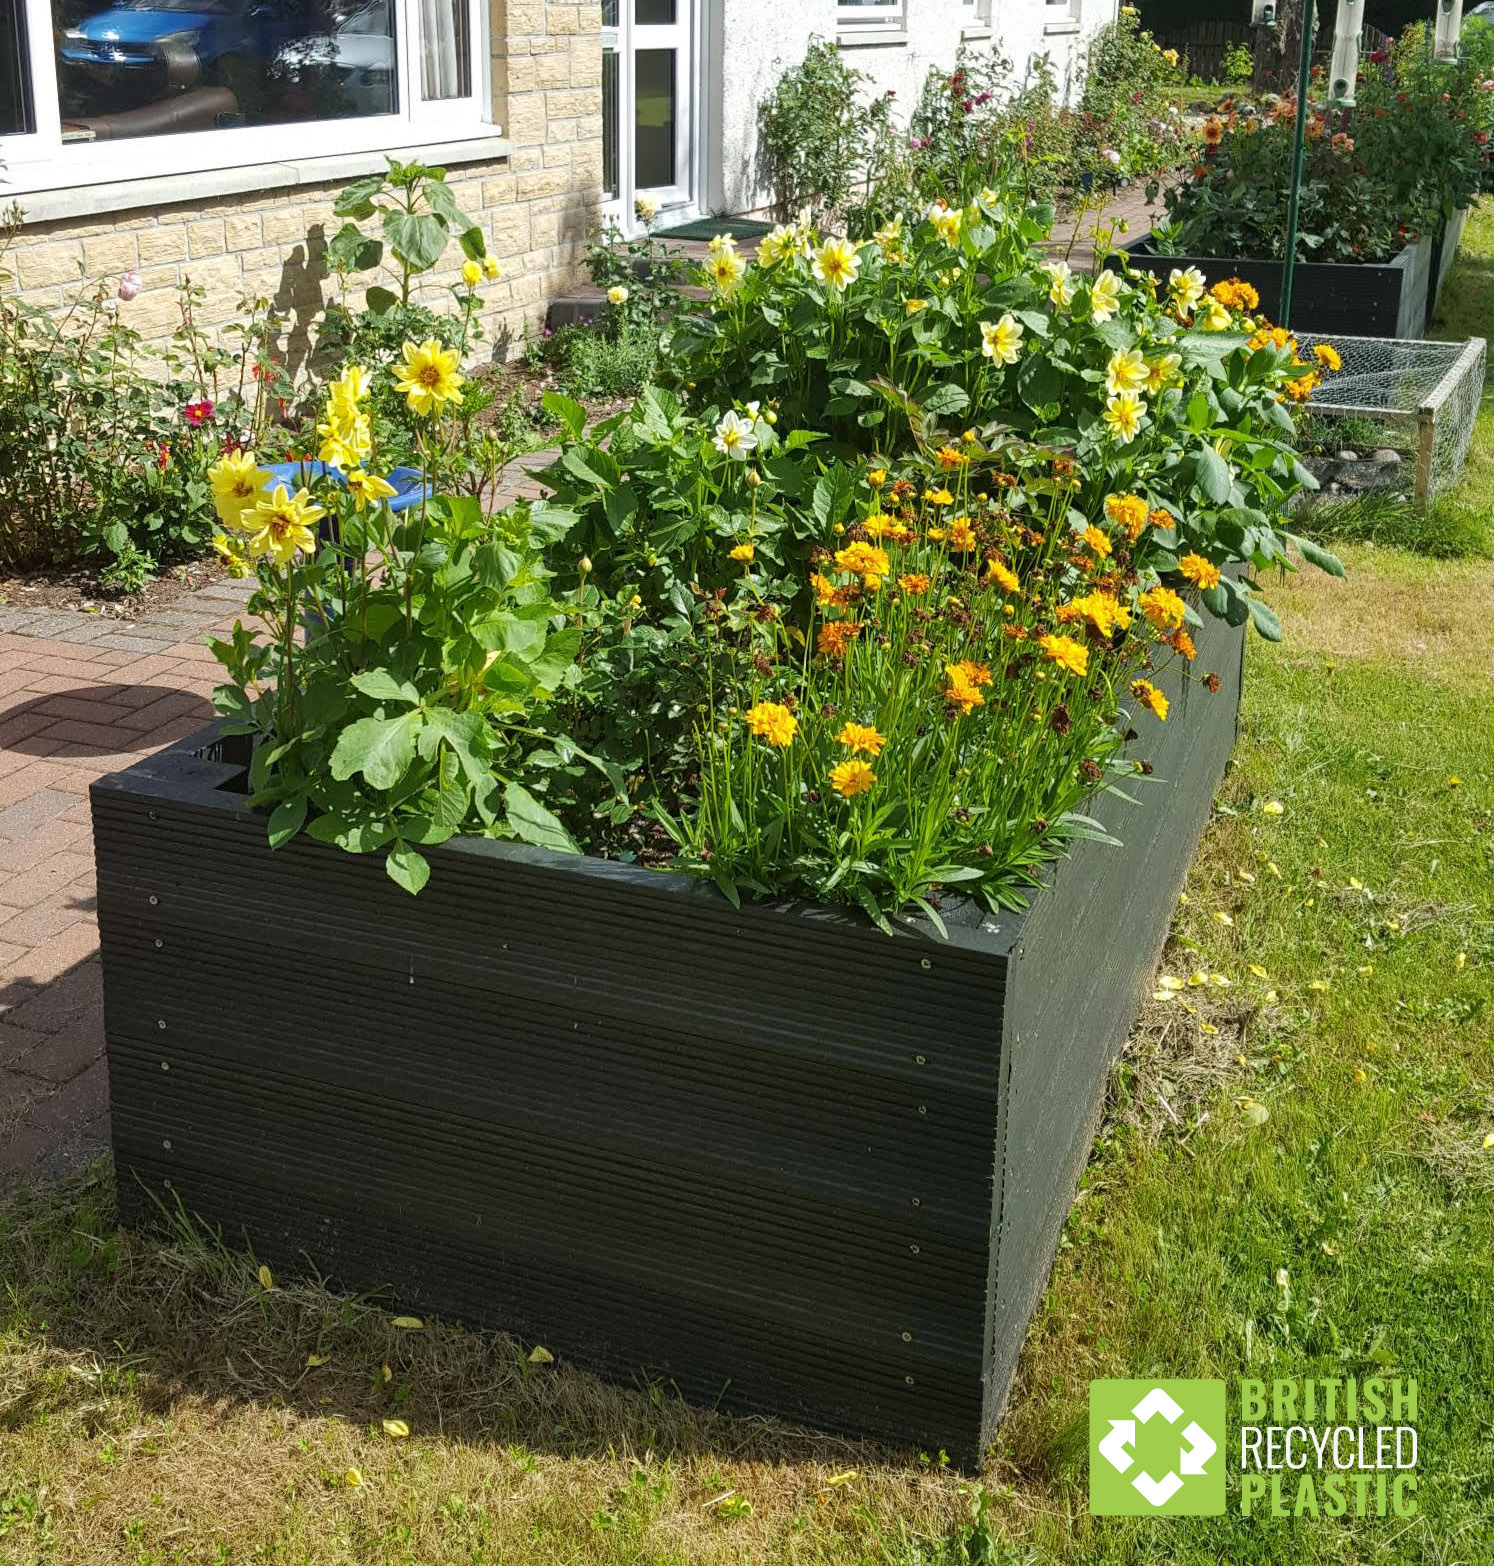 A Happy Raised Beds Customer - British Recycled Plastic